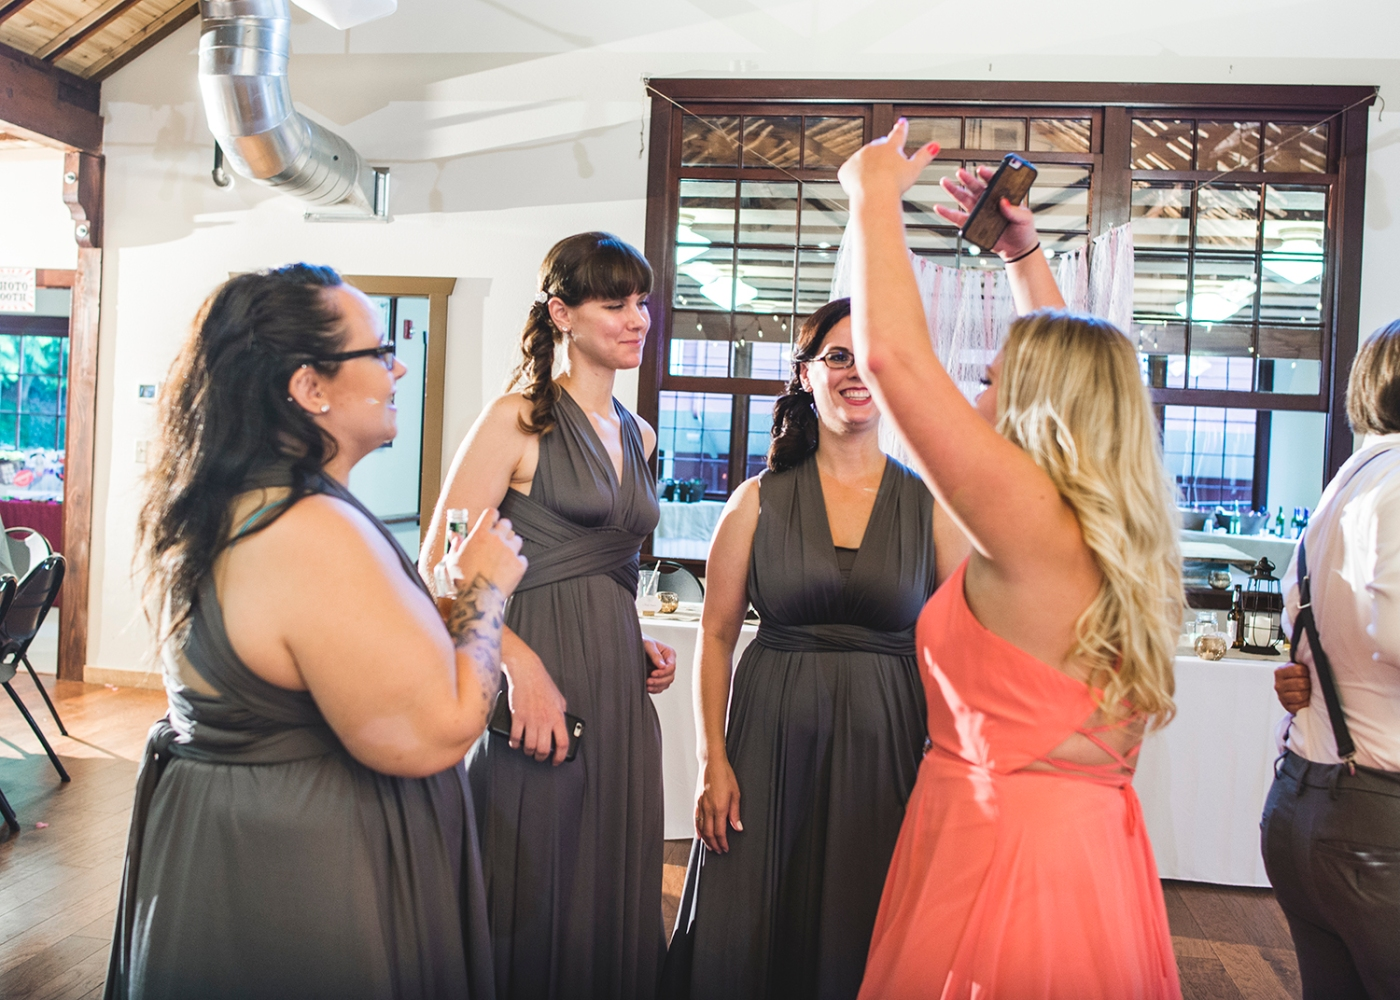 Jane_S_Seattle_photography_Kadie_and_Steve_2016_Des_Moines_Marina_Wedding_DSC_2165